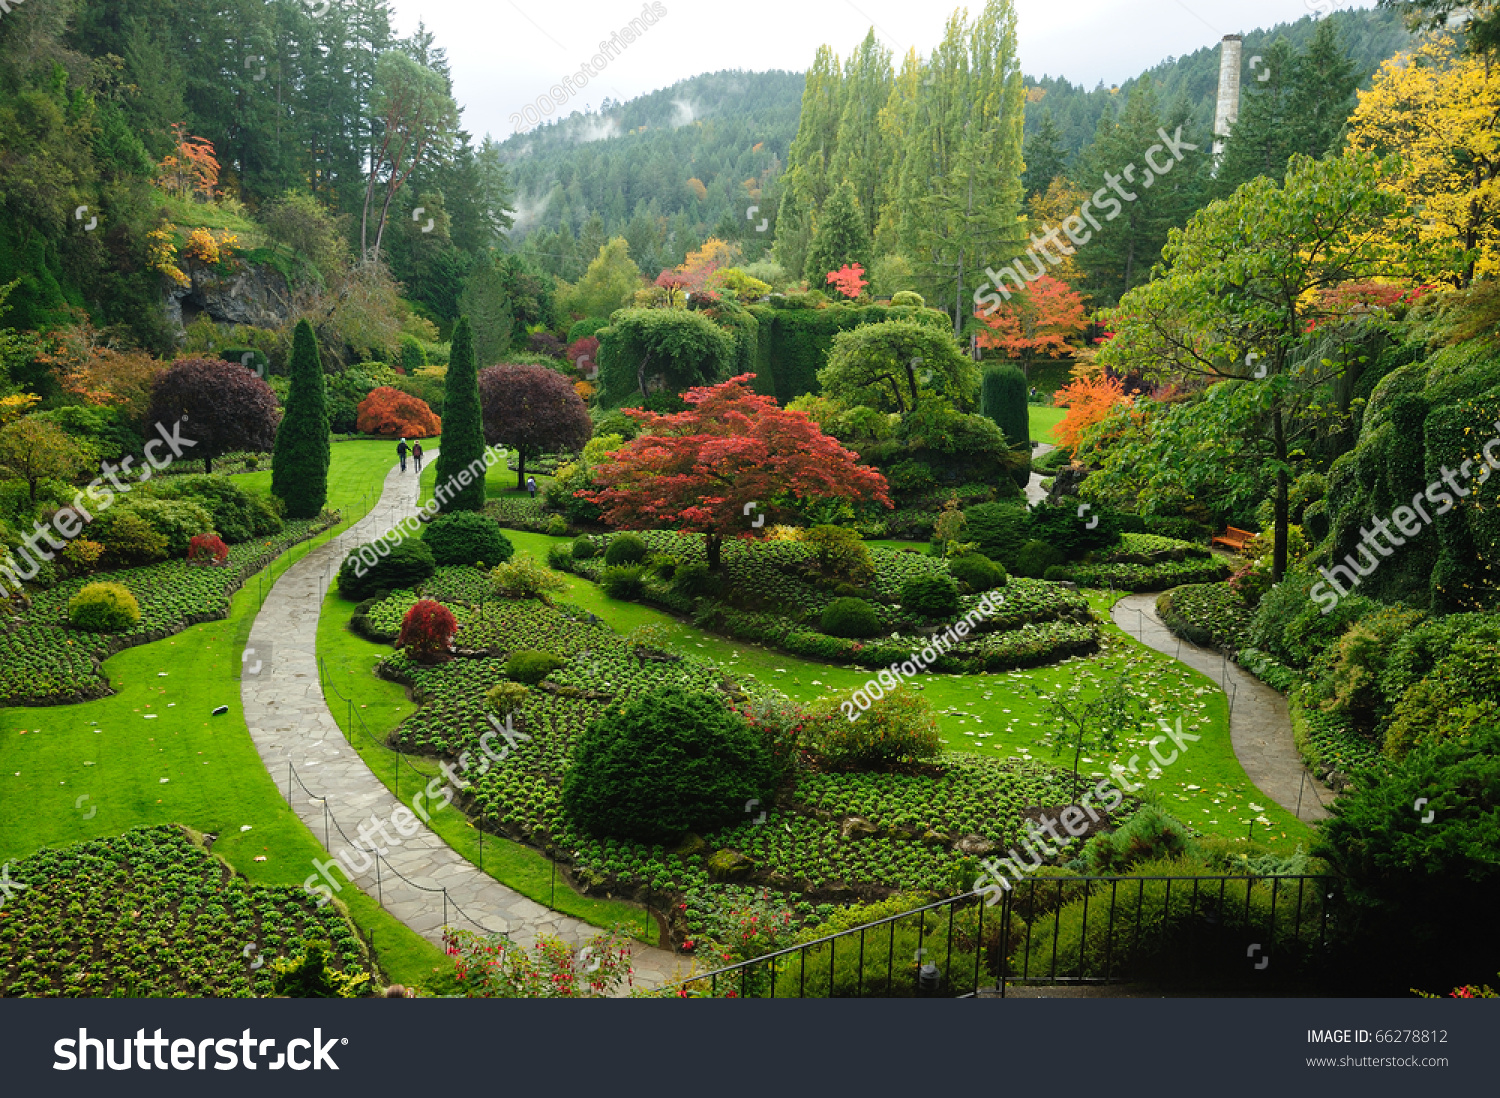 Autumn butchart gardens victoria british columbia stock for Gardening tools victoria bc